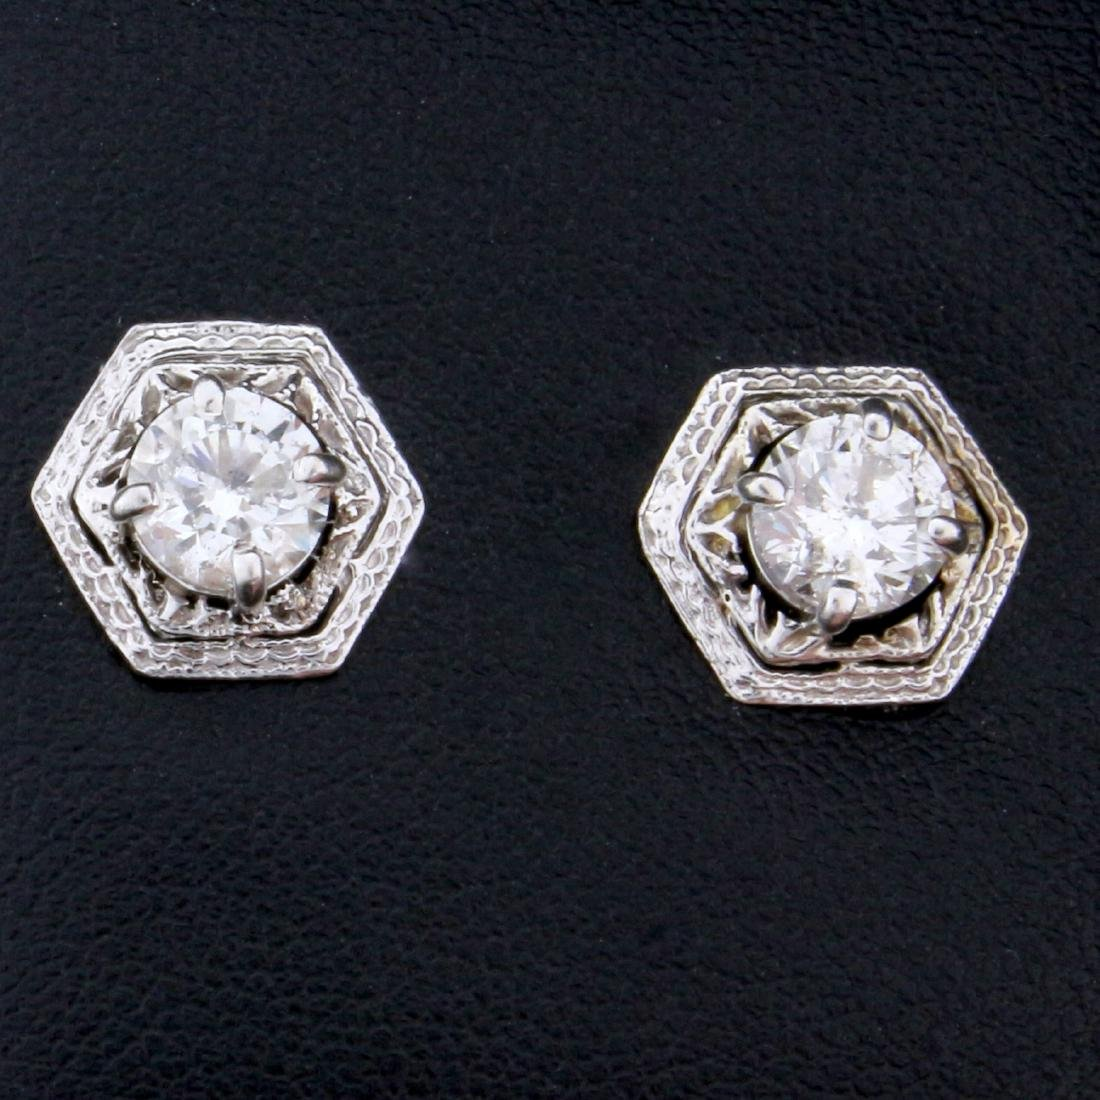 Unique 1.6ct TW Diamond Earrings in 14k White Gold